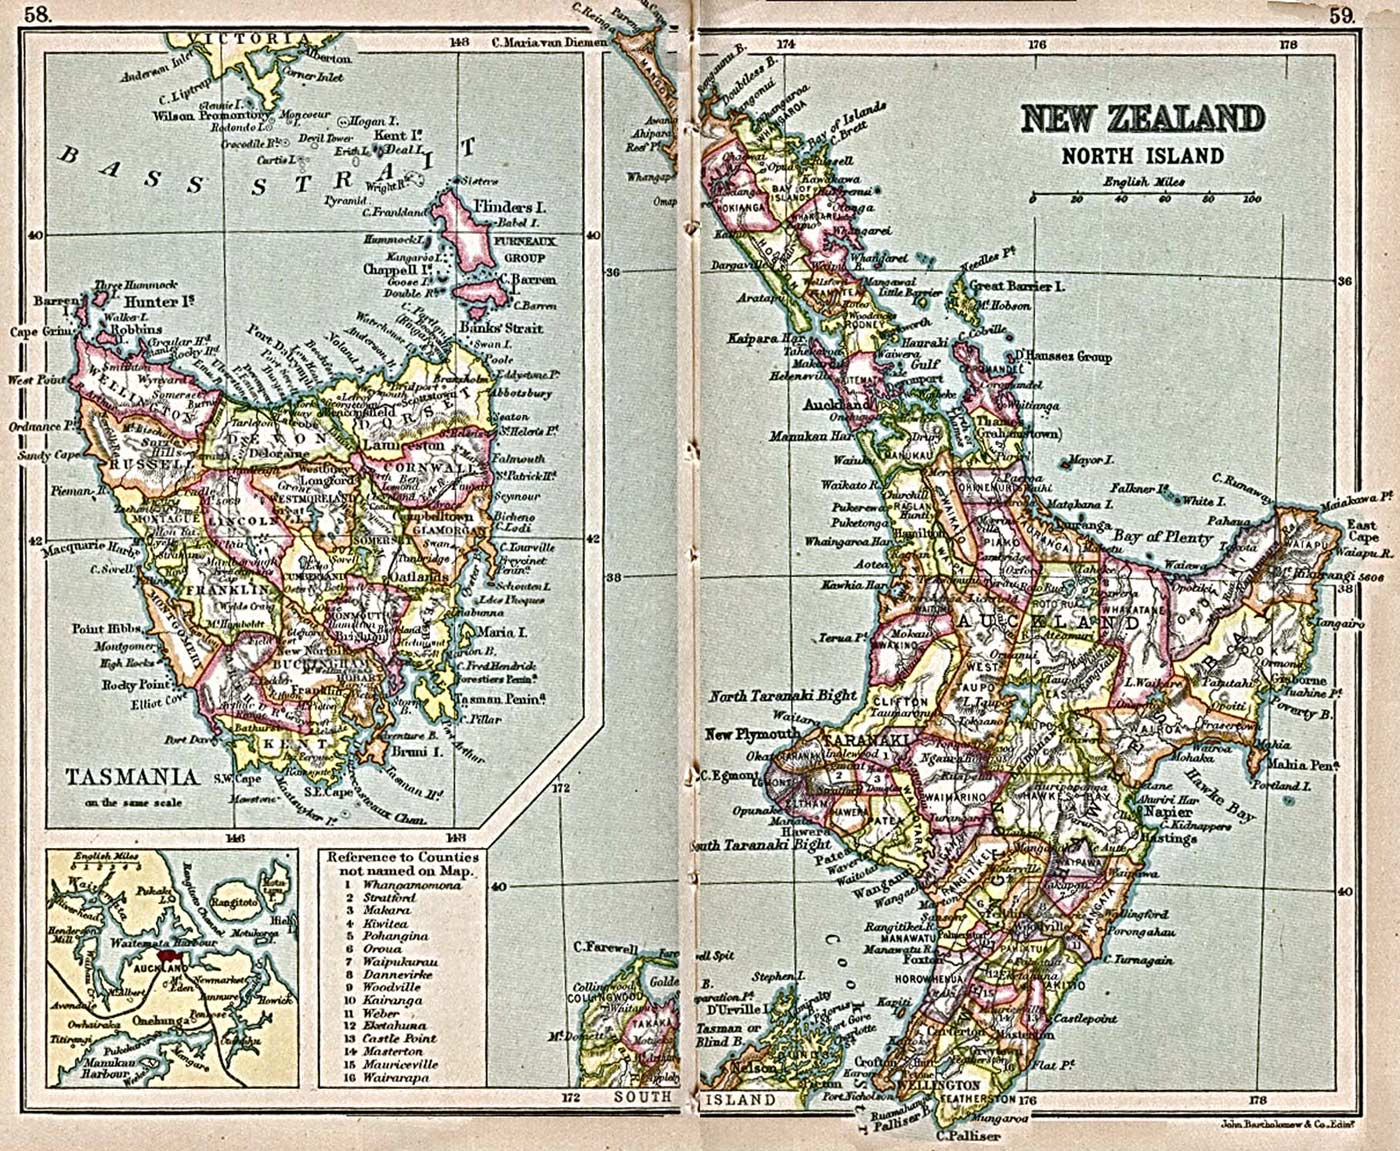 New Zealand North Map.Historical Map New Zealand North Island 1913 Mapsof Net